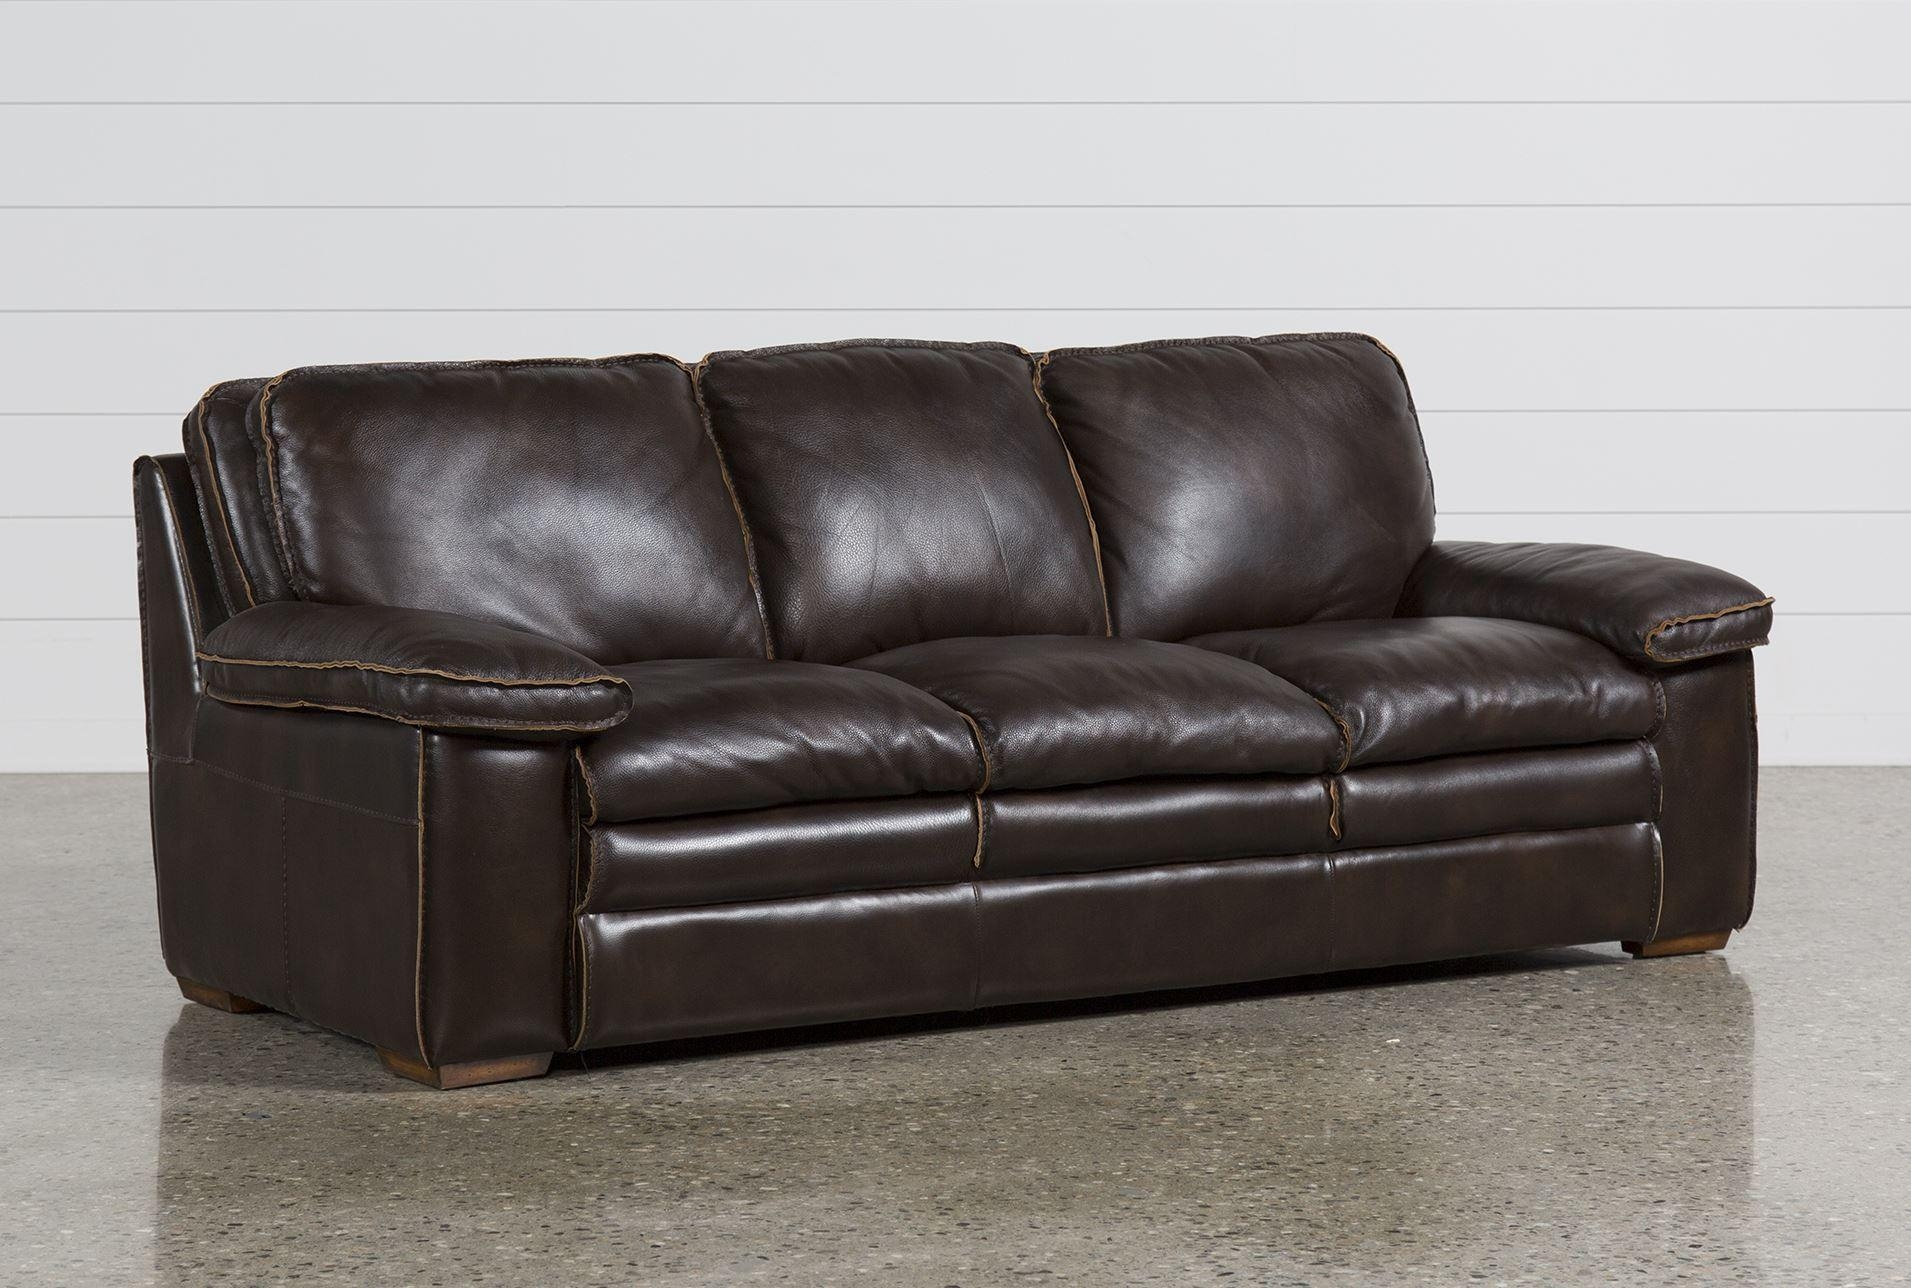 Sealy Leather Sofa 35 With Sealy Leather Sofa | Realestateurl Pertaining To Sealy Sofas (Image 7 of 20)